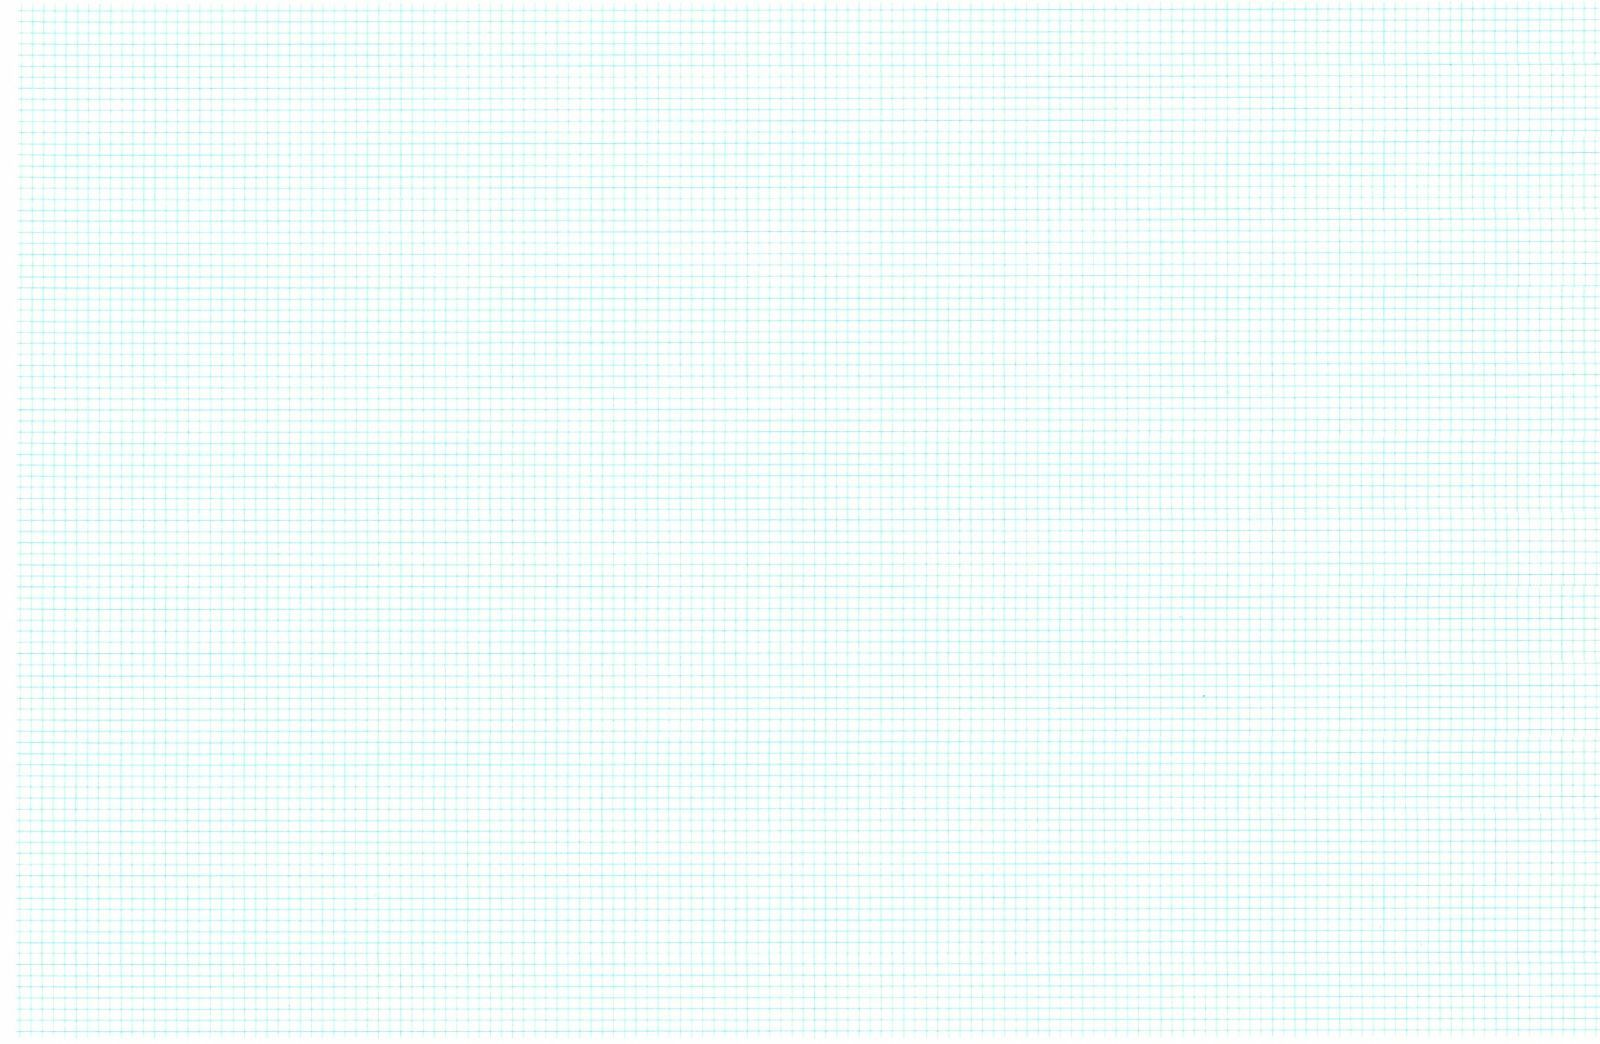 10 pack of large sheet format 1 4 graph paper 36 x 24 blue